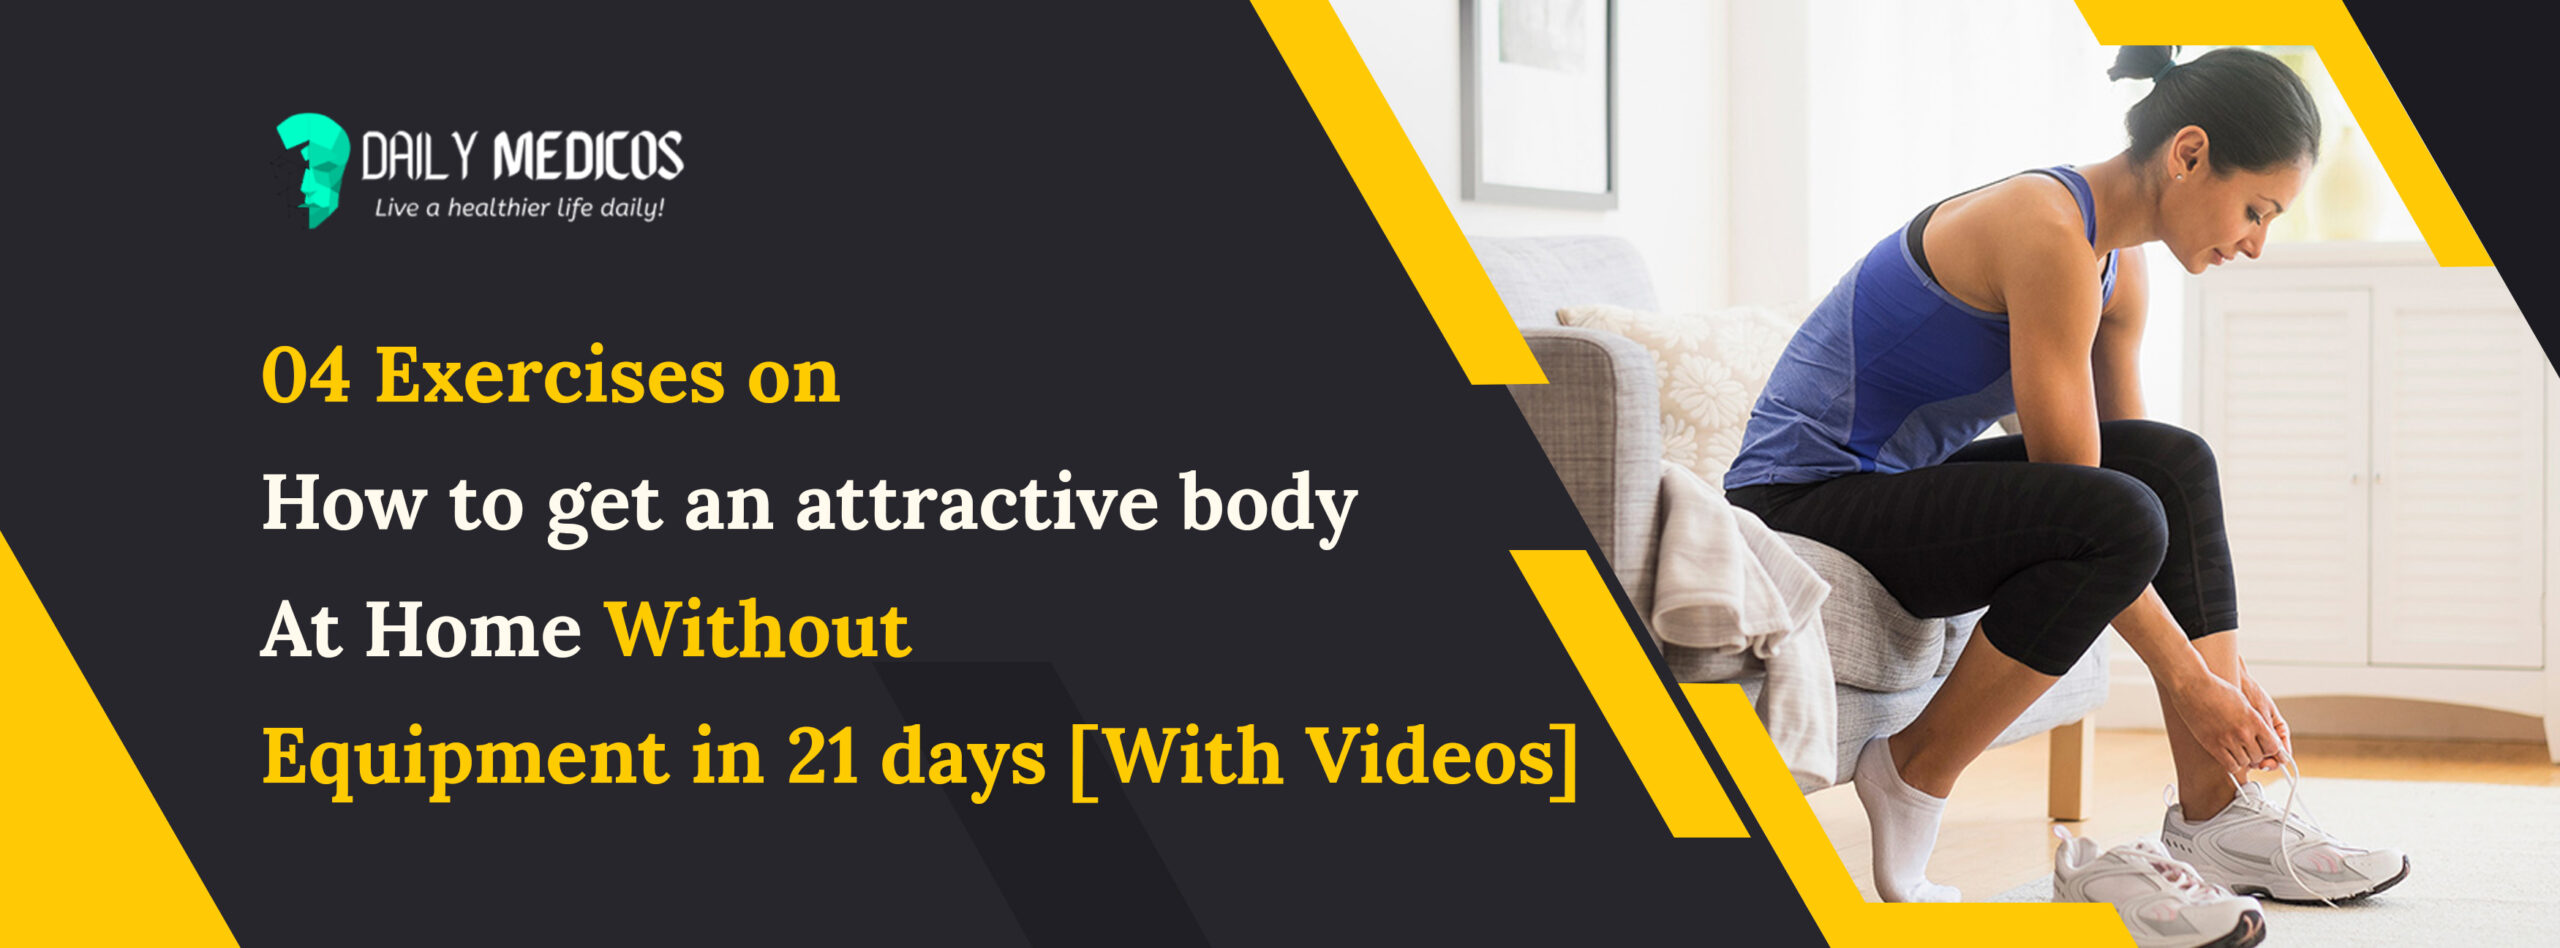 04 Exercises on How to Get an Attractive Body At Home Without Equipment in 21 days [With Videos] 1 - Daily Medicos